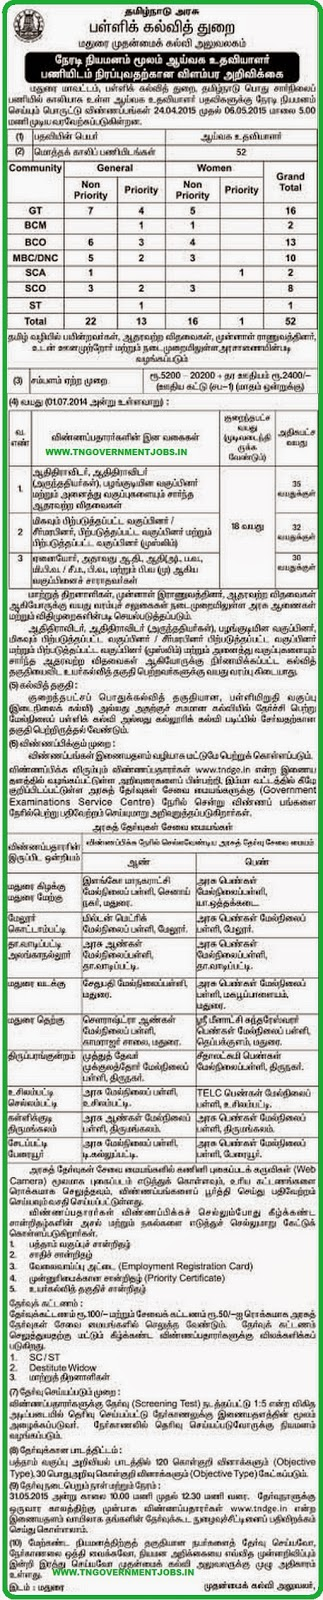 Madurai CEO Lab Asst Recruitments 2015 (www.tngovernmentjobs.in)